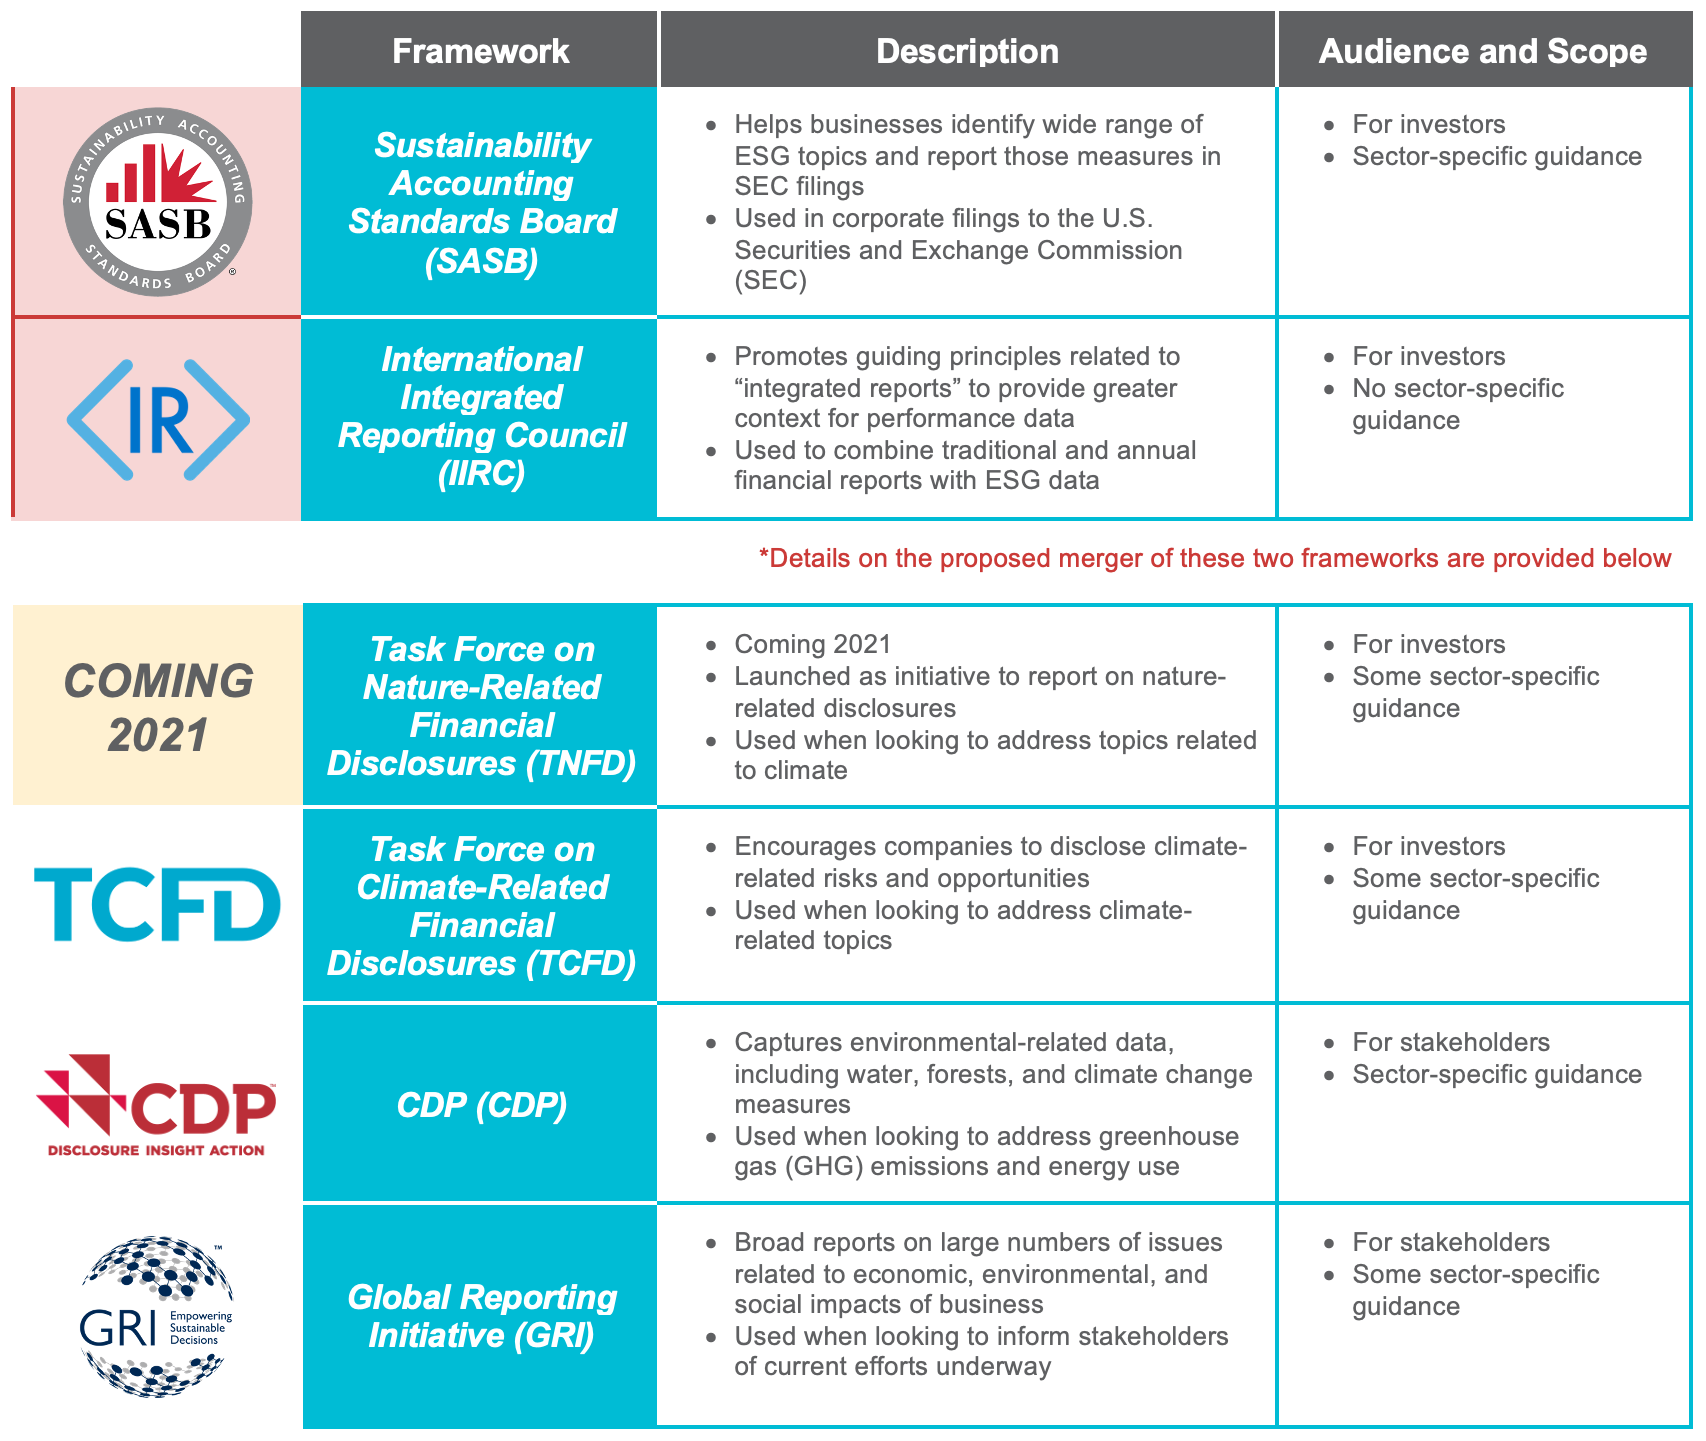 ESG Reporting Frameworks: Sustainability Accounting Standards Board, International Integrated Reporting Council, Task Force on Nature-Related Financial Disclosures, Task Force on Climate-Related Financial Disclosures, CDP, Global Reporting Initiative